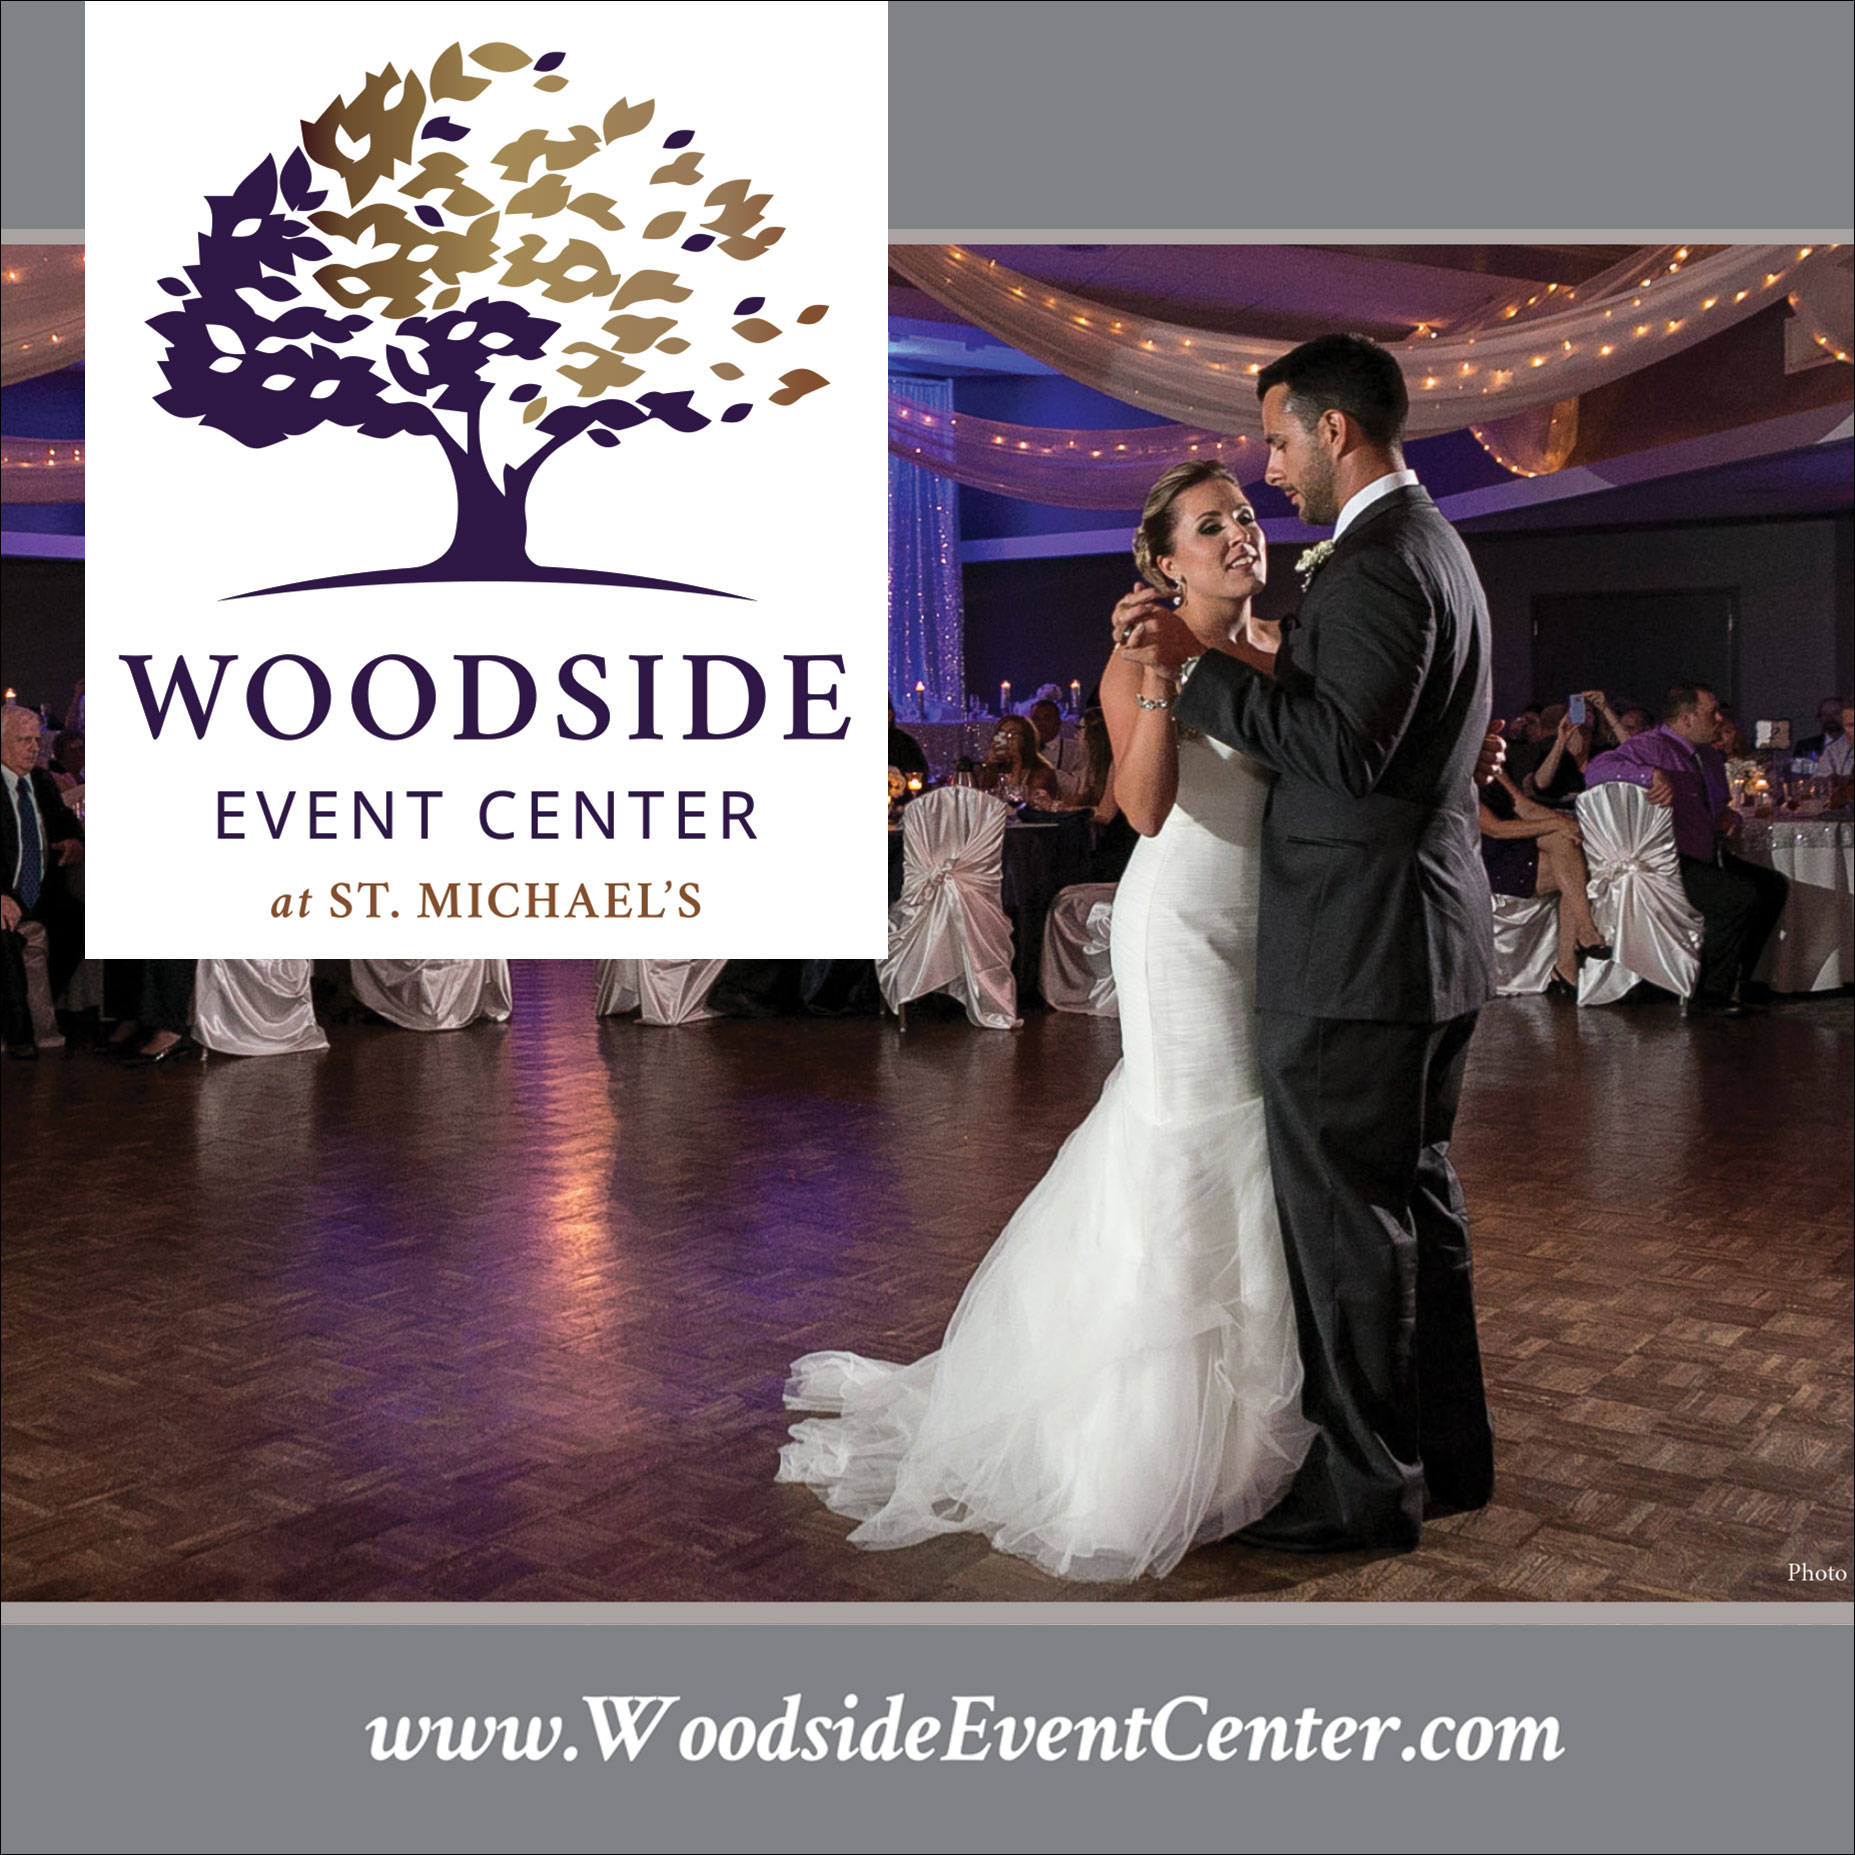 Woodside Event Center